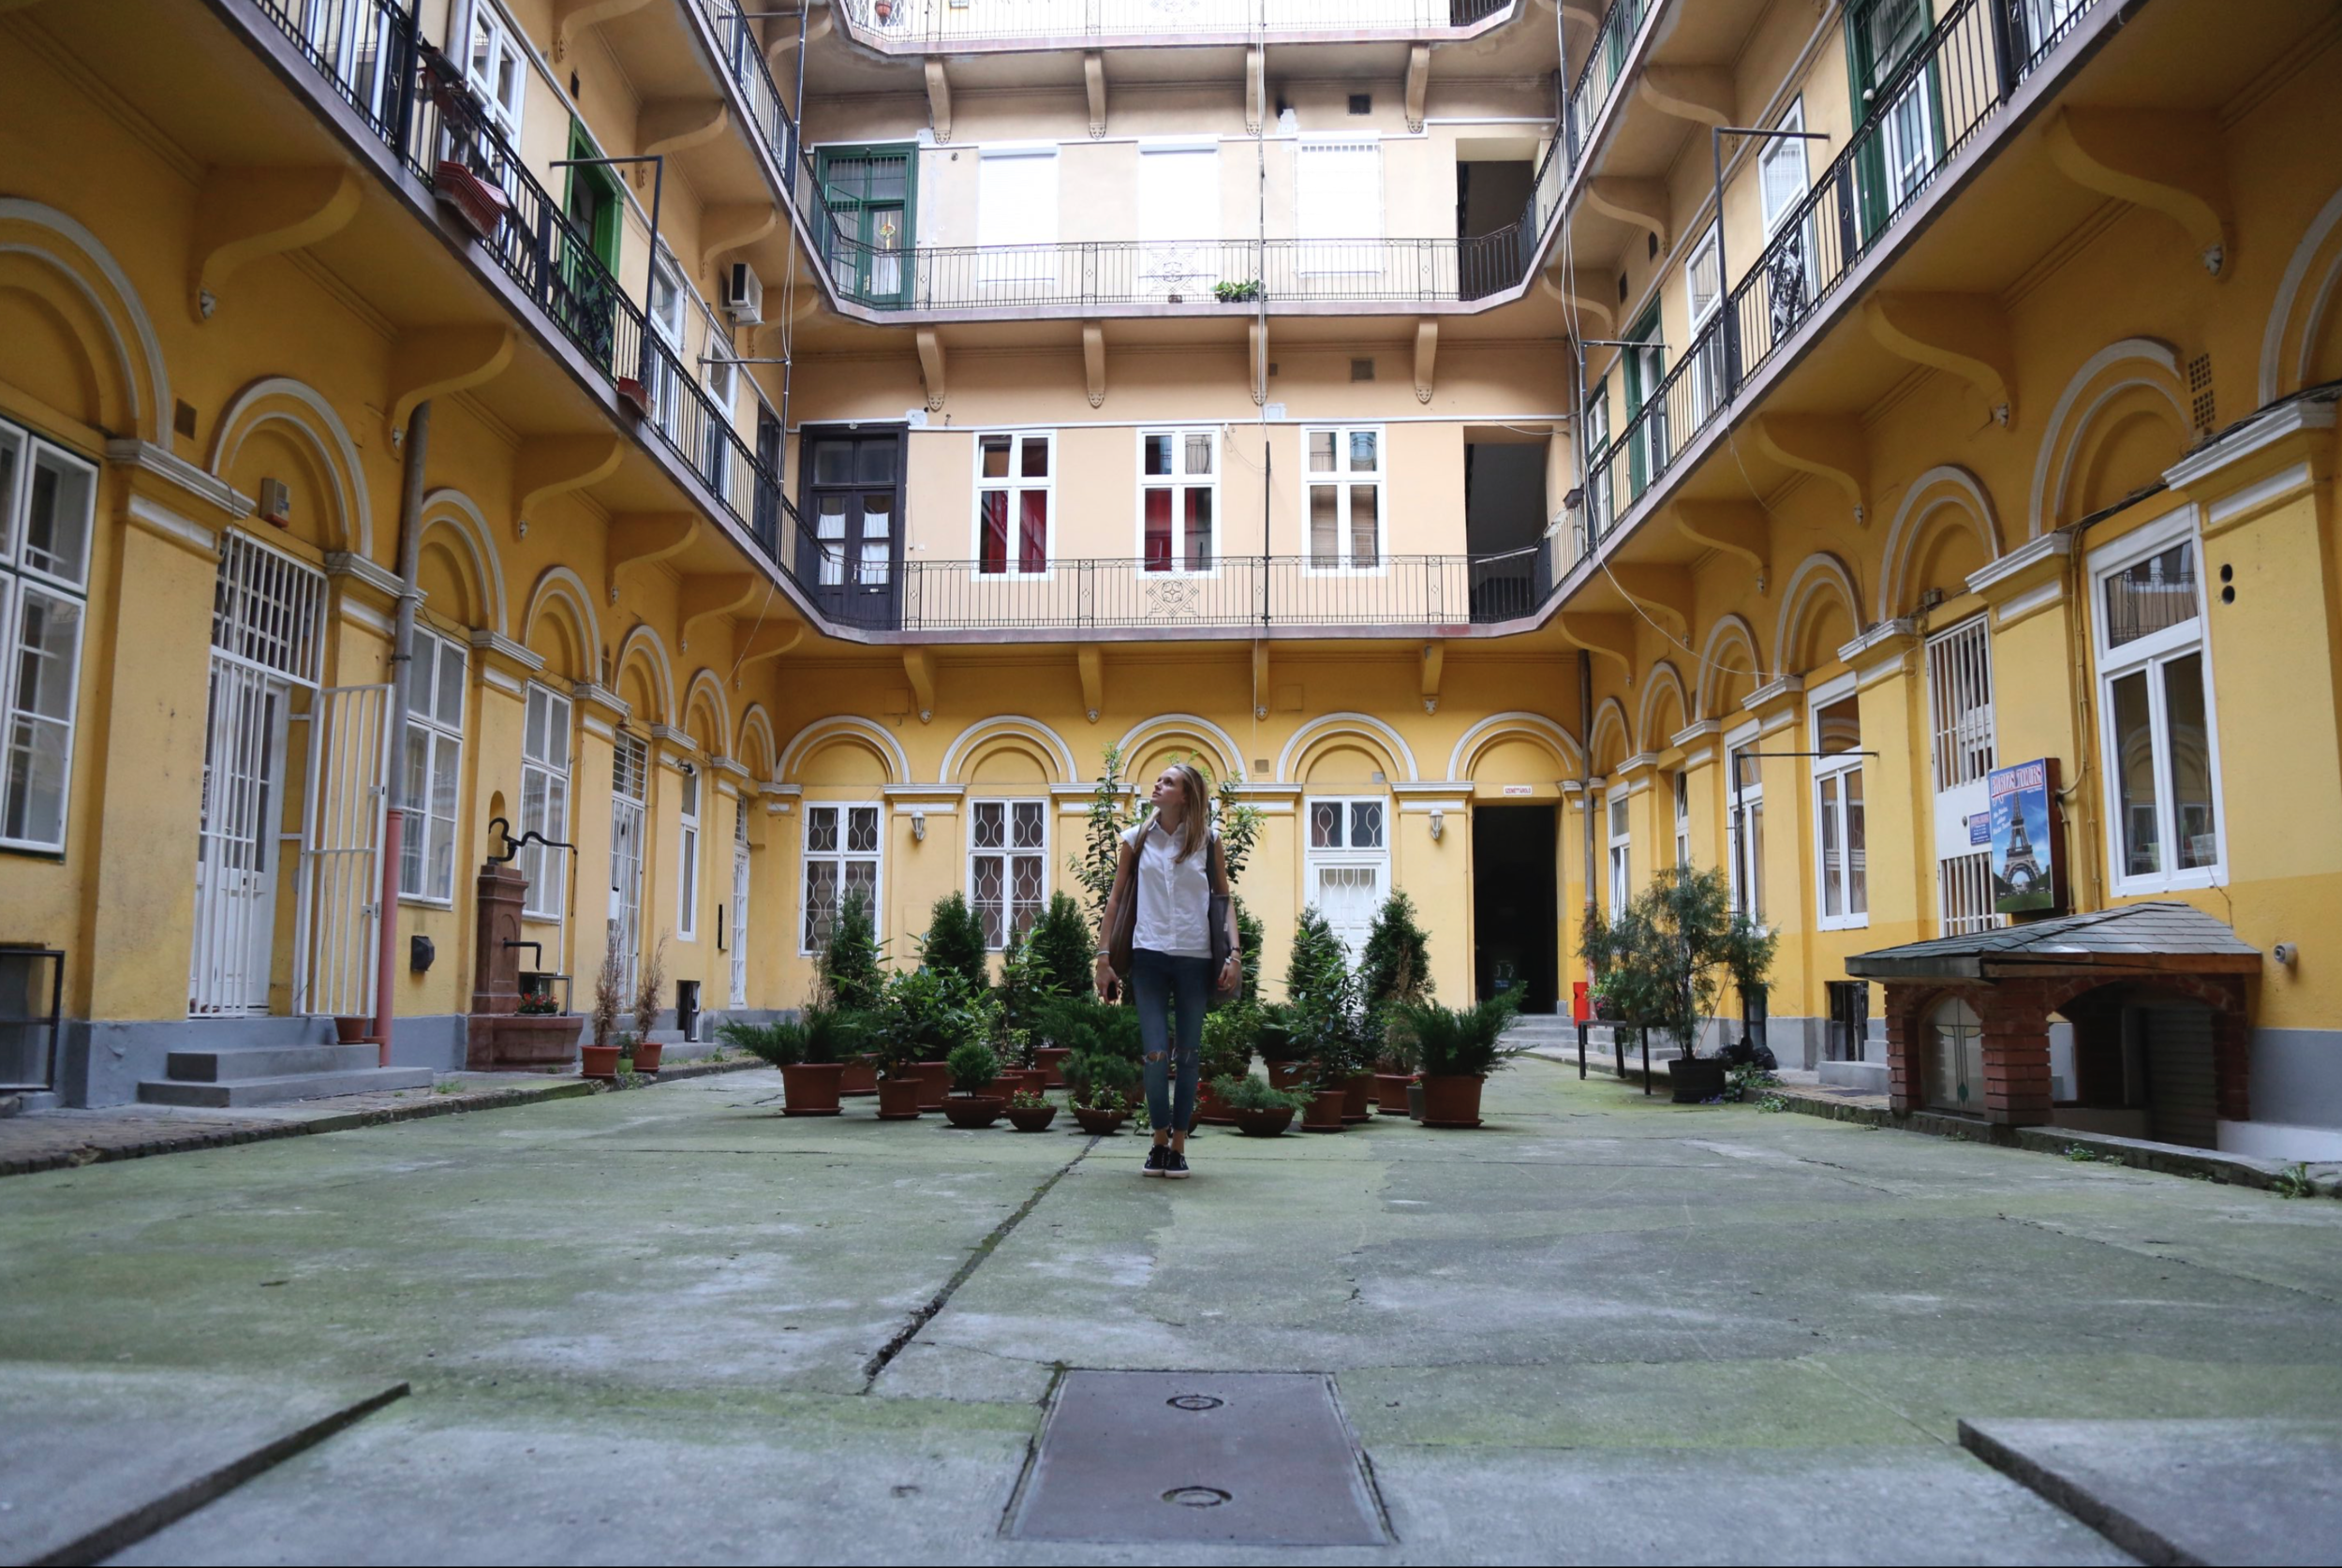 Some of these old courtyards have been turned into bars and worth checking out..